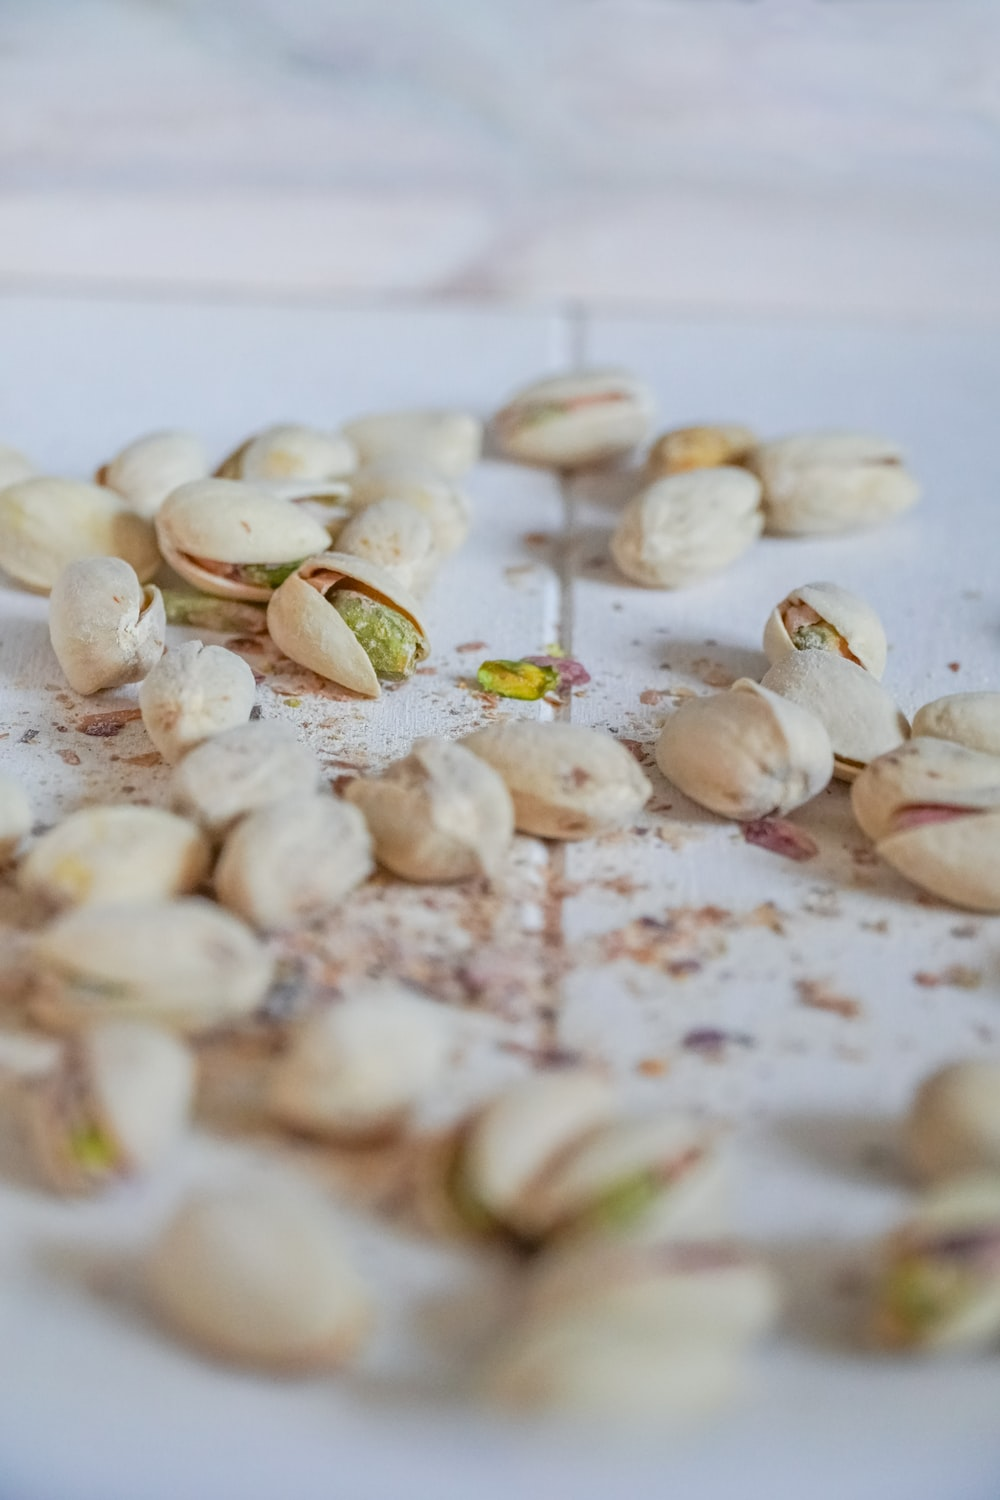 white and brown seashells on white table